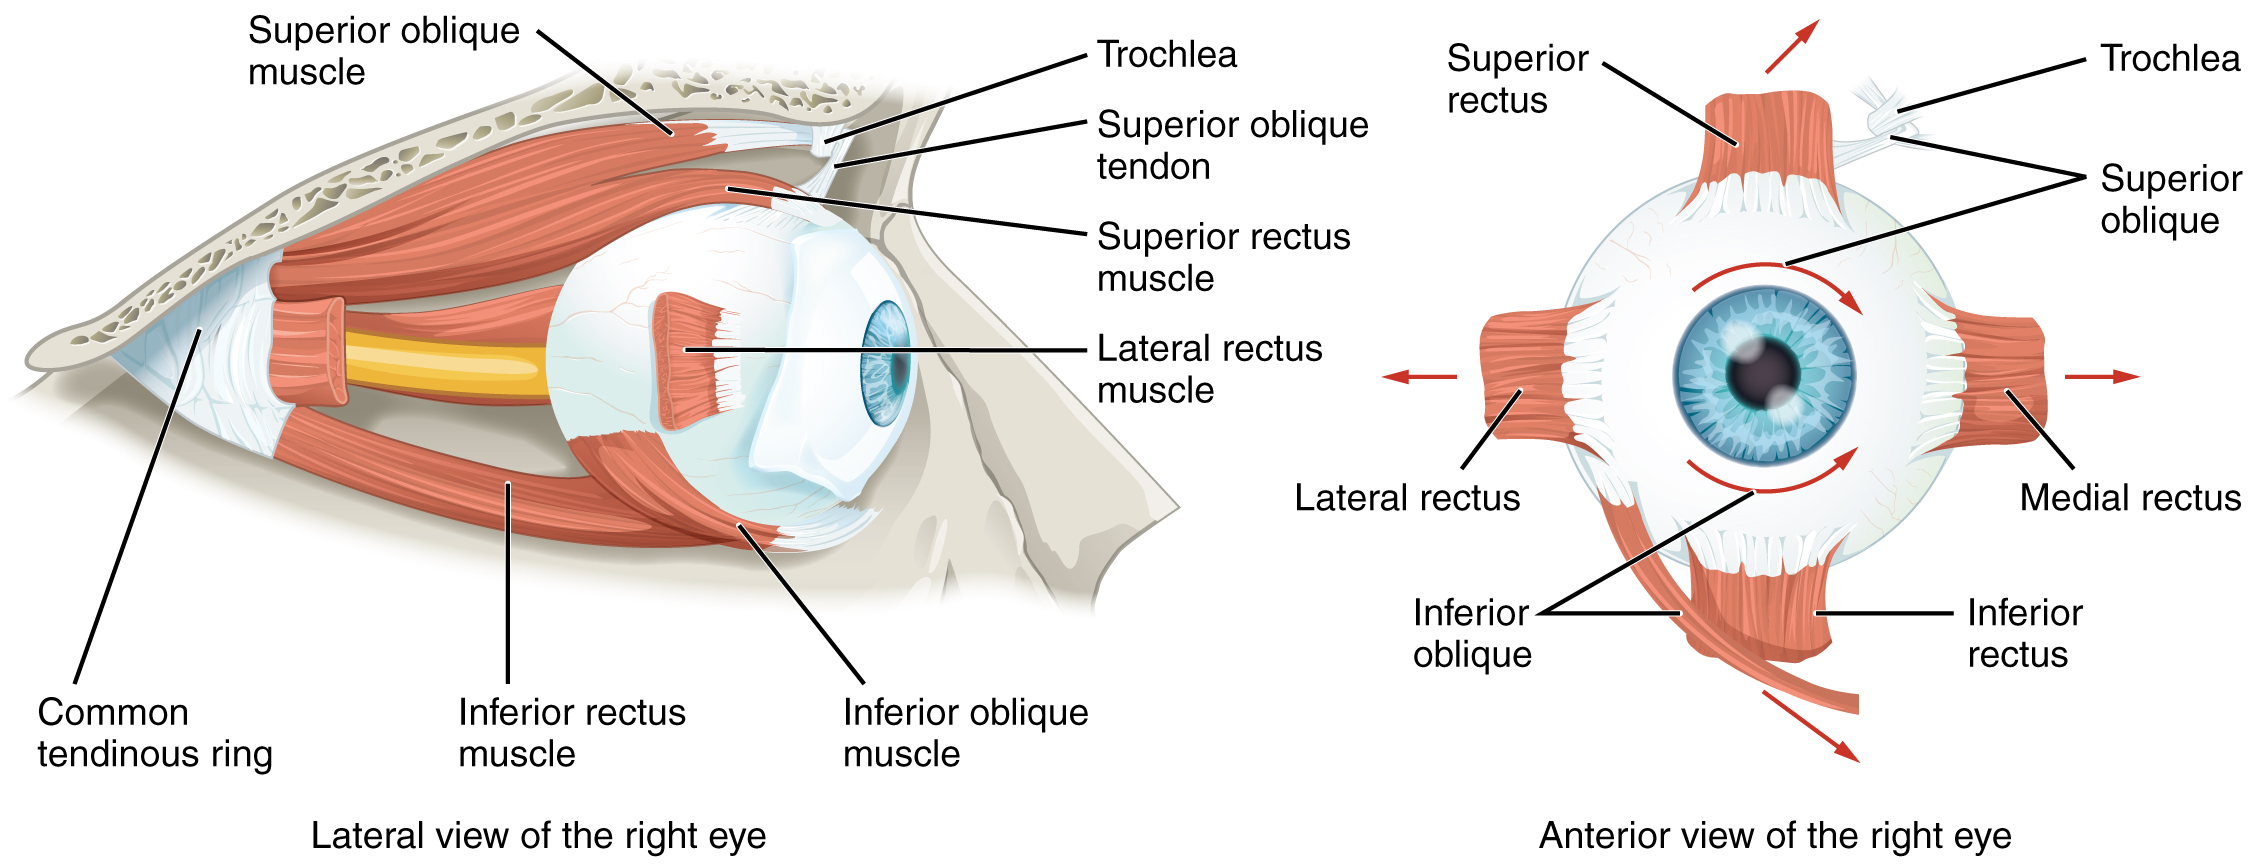 Image of the eyeball listing the names of muscles